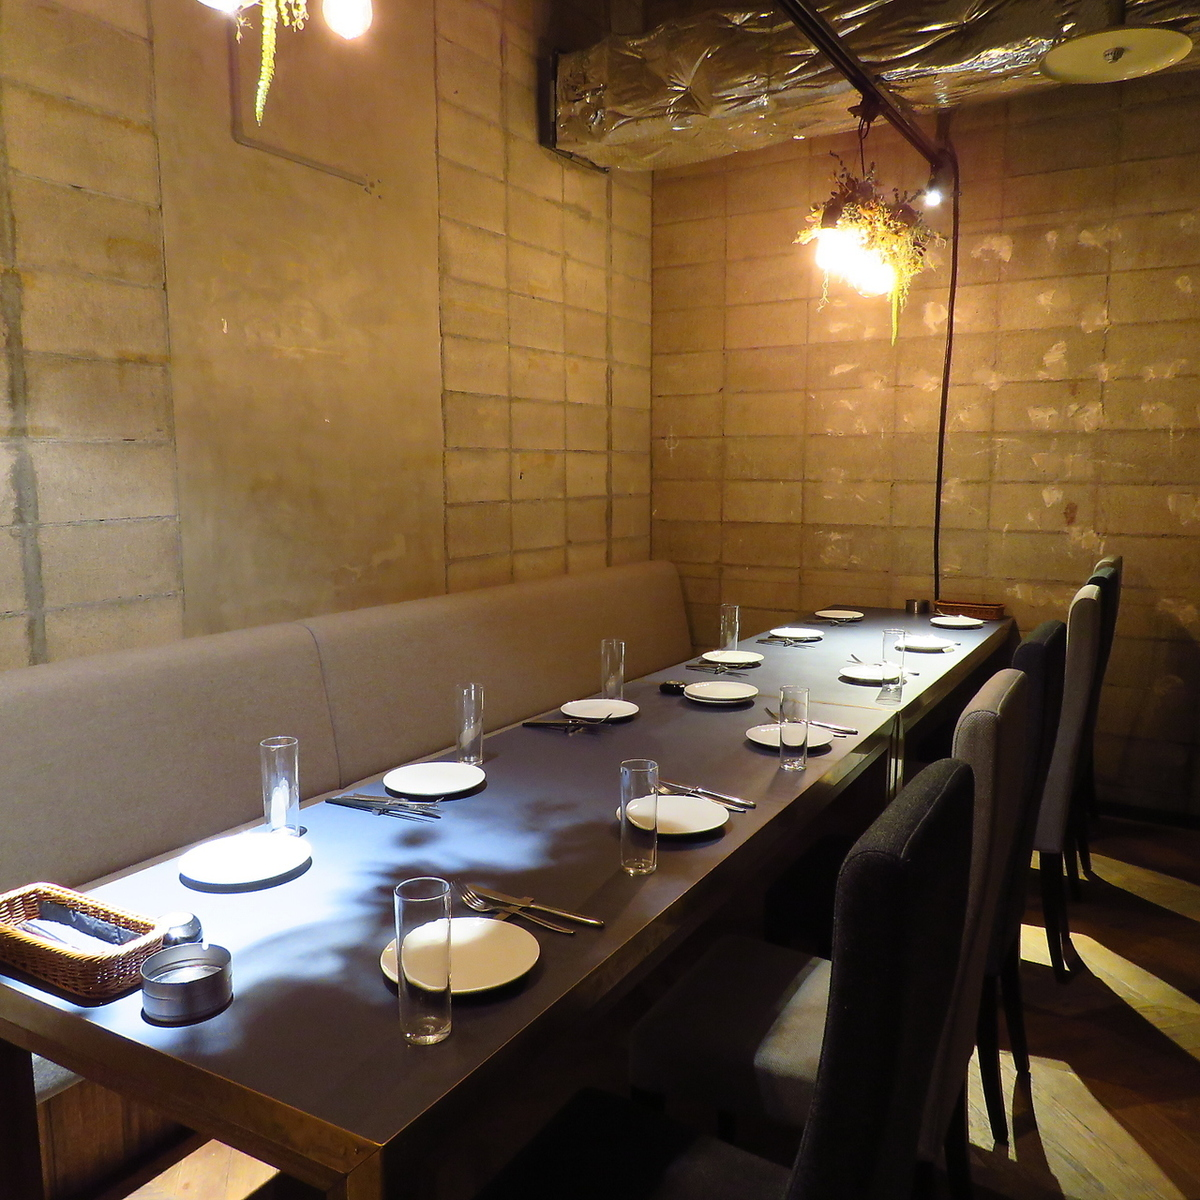 Private room private room up to 16 people OK! It is recommended for medium size banquet · party ♪